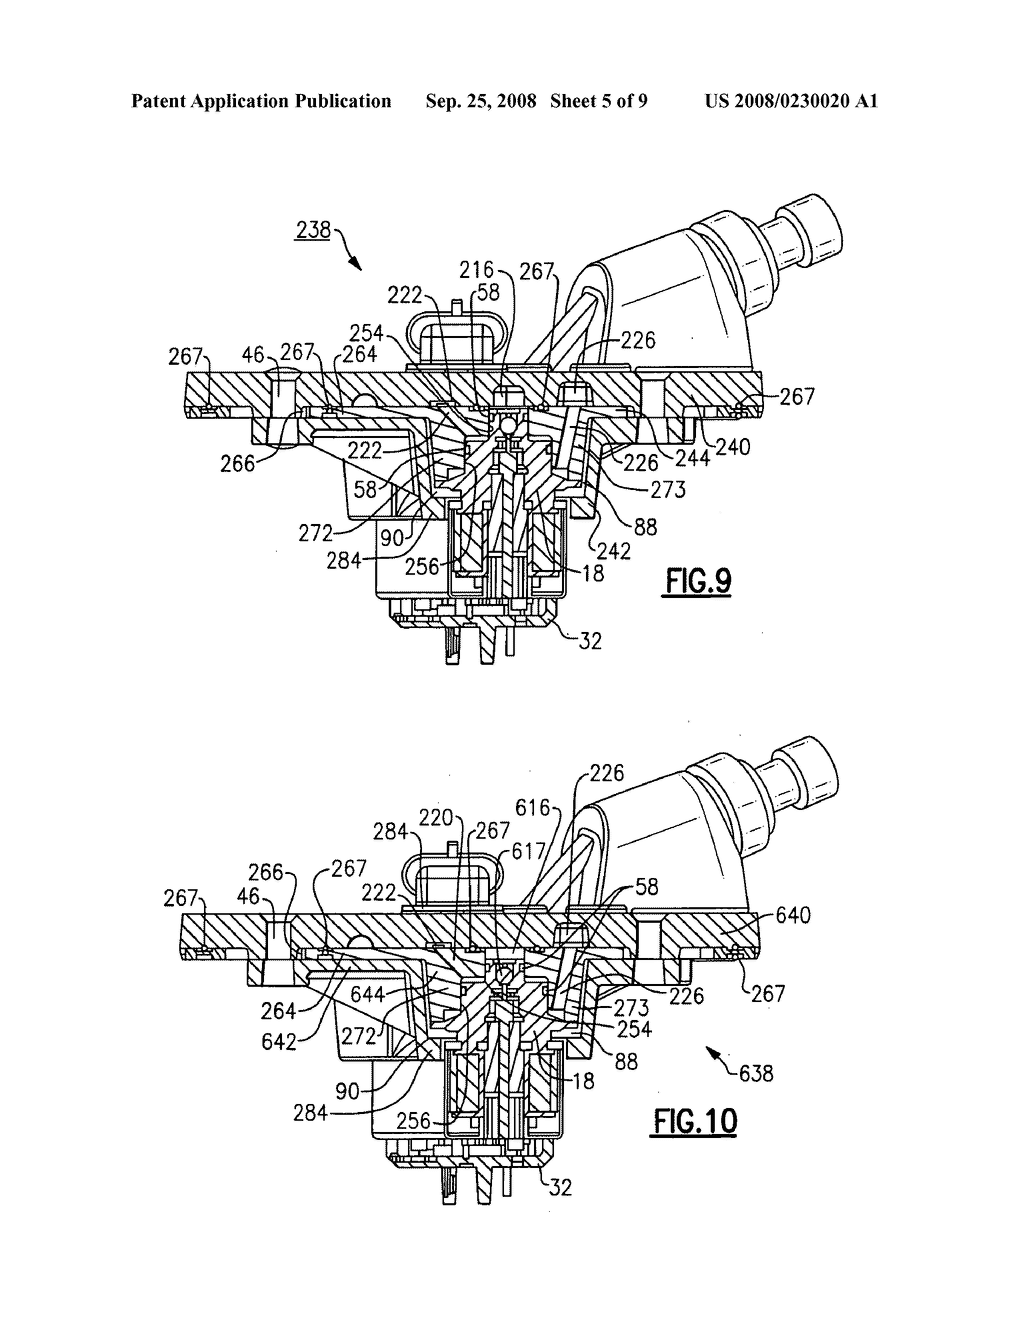 lifter oil manifold assembly for variable activation and rh patentsencyclopedia com Moving Internal Combustion Engine Internal Combustion Engine Design